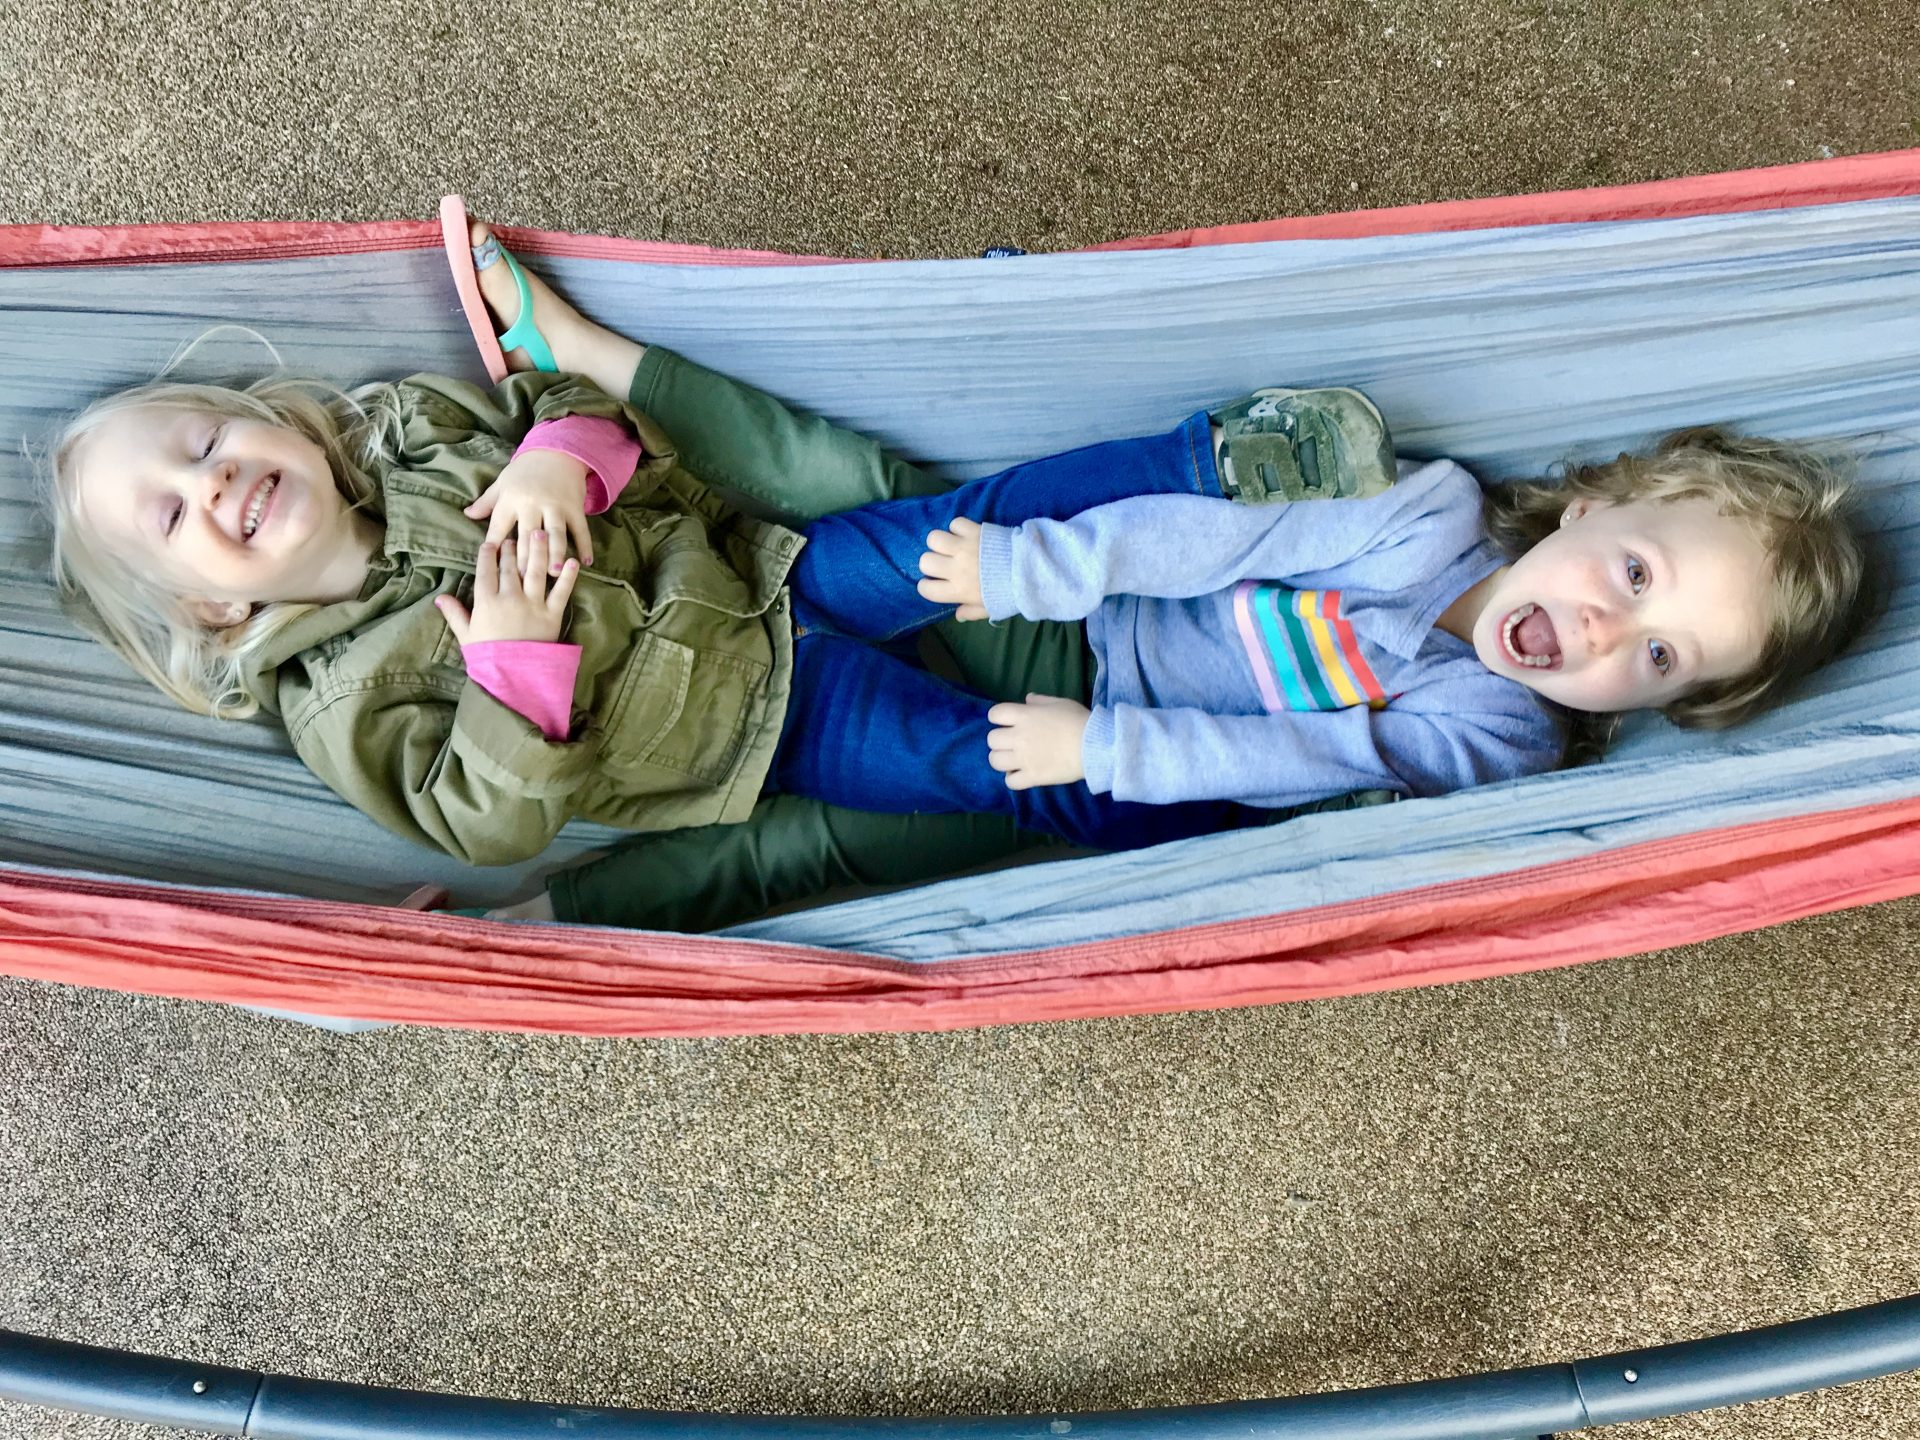 Girls swinging in the hammock